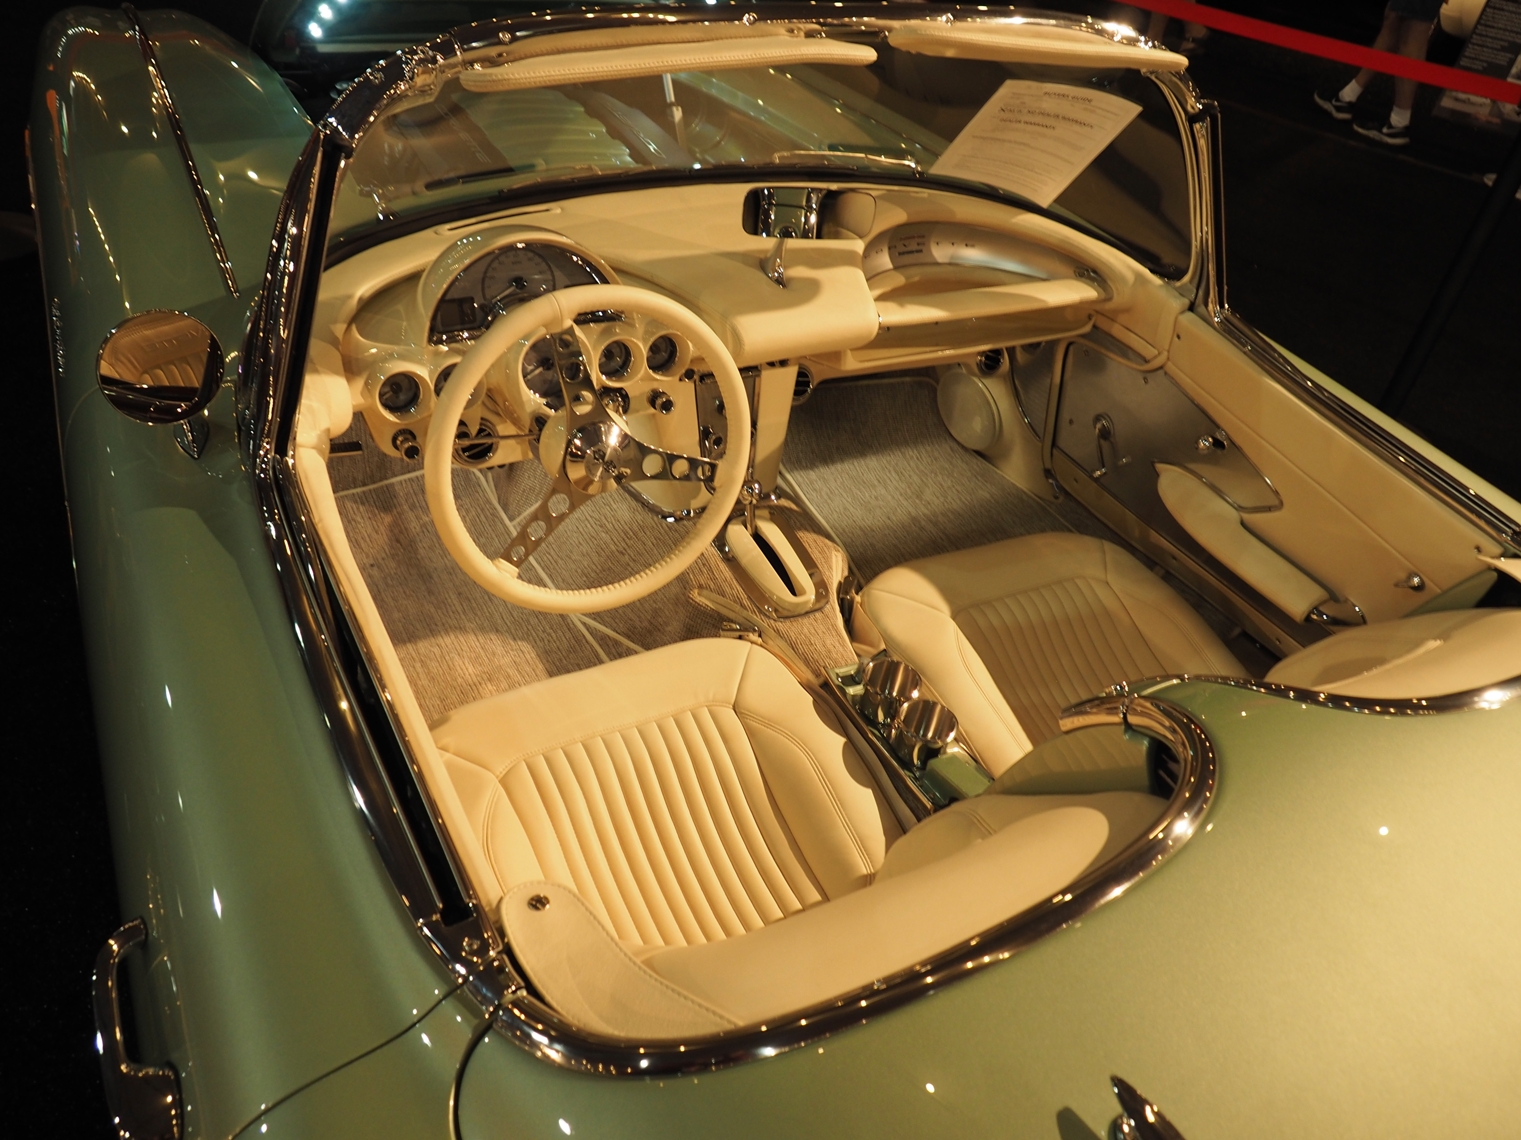 2021 Clevenger 1959 Corvette Convertible restomod interior